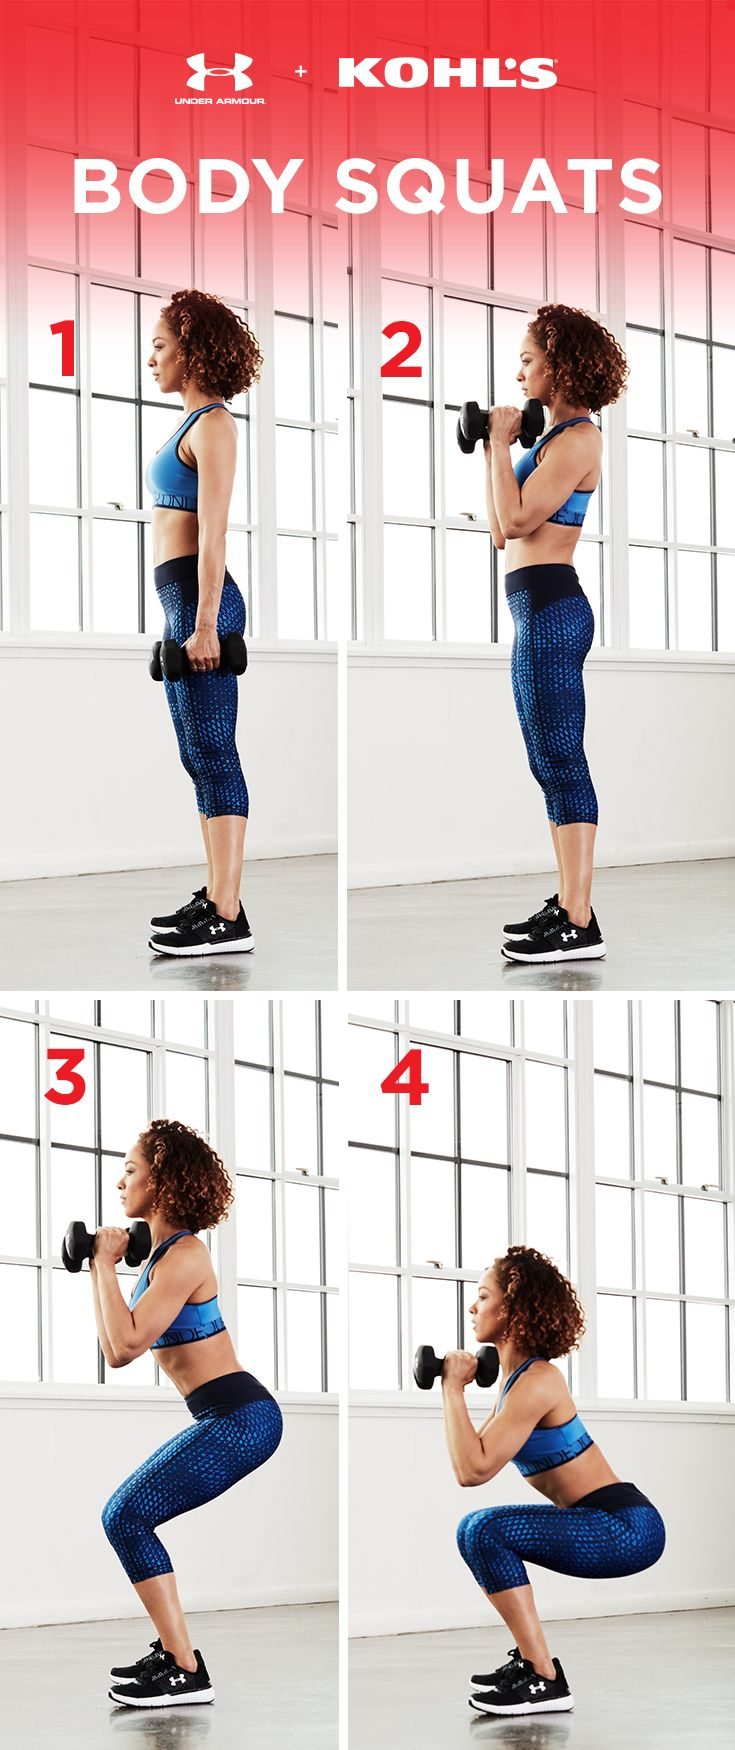 Try this exercise on the next leg day and add weights for a full-body workout. These body squats will work your arms, legs and backside if they're done slowly and with correct form (remember: your knees should not go past your feet!). Get fit with Under Armour and Kohl's.